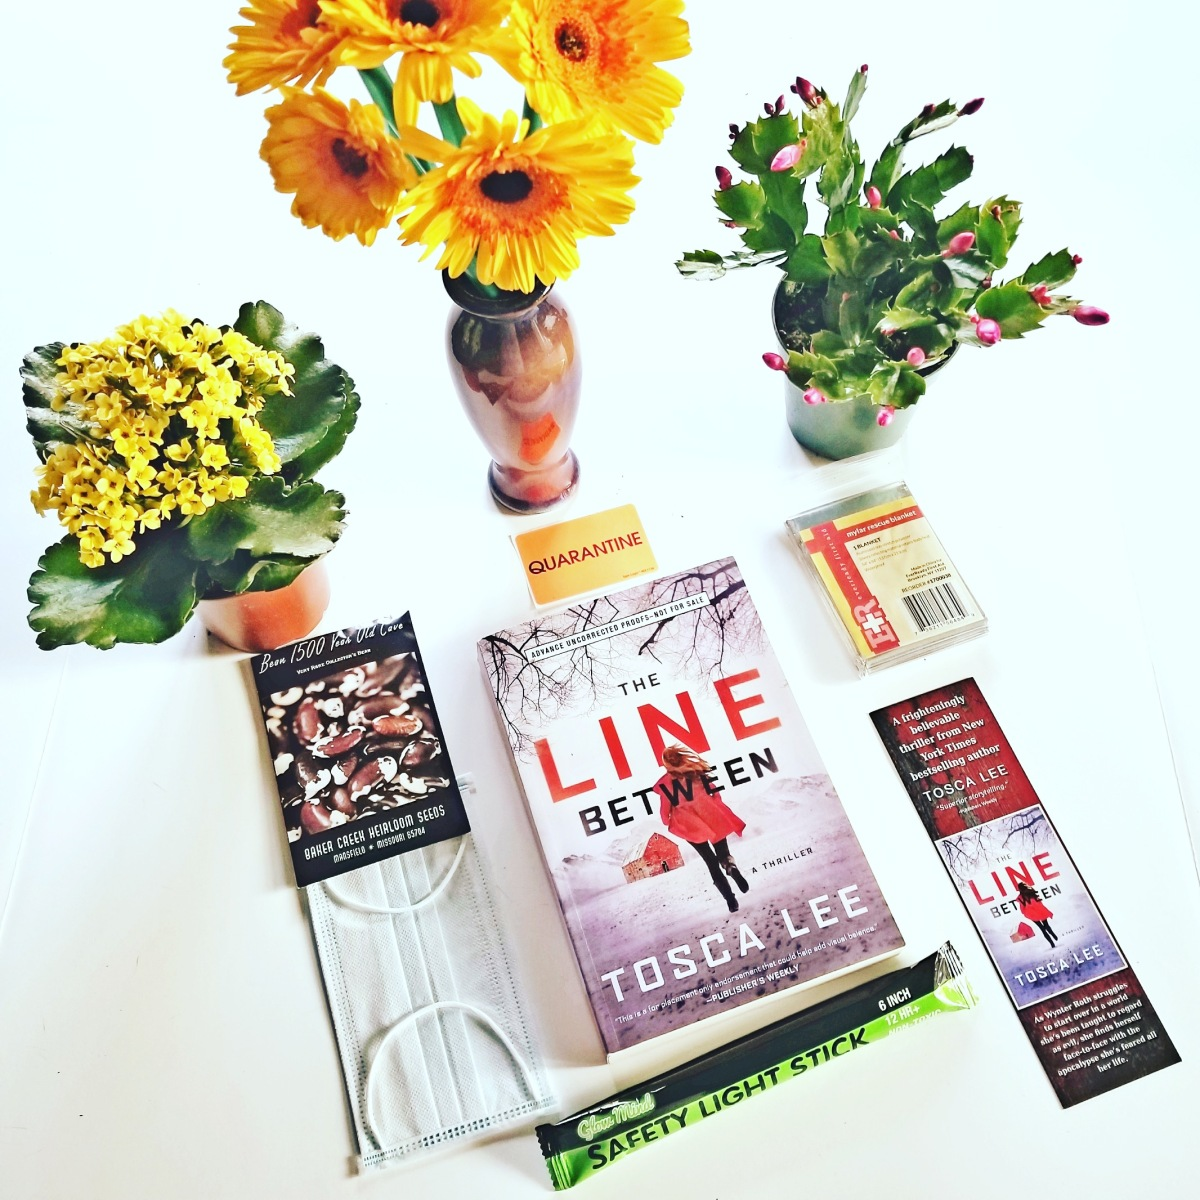 First Line Fridays: The Line Between by Tosca Lee #firstlinefridays #tarheelreader #thrlinebetween #bookbestieslinebetween @toscalee @howardbooks @simonschuster #bookbestieslinebetween #thelinebetween